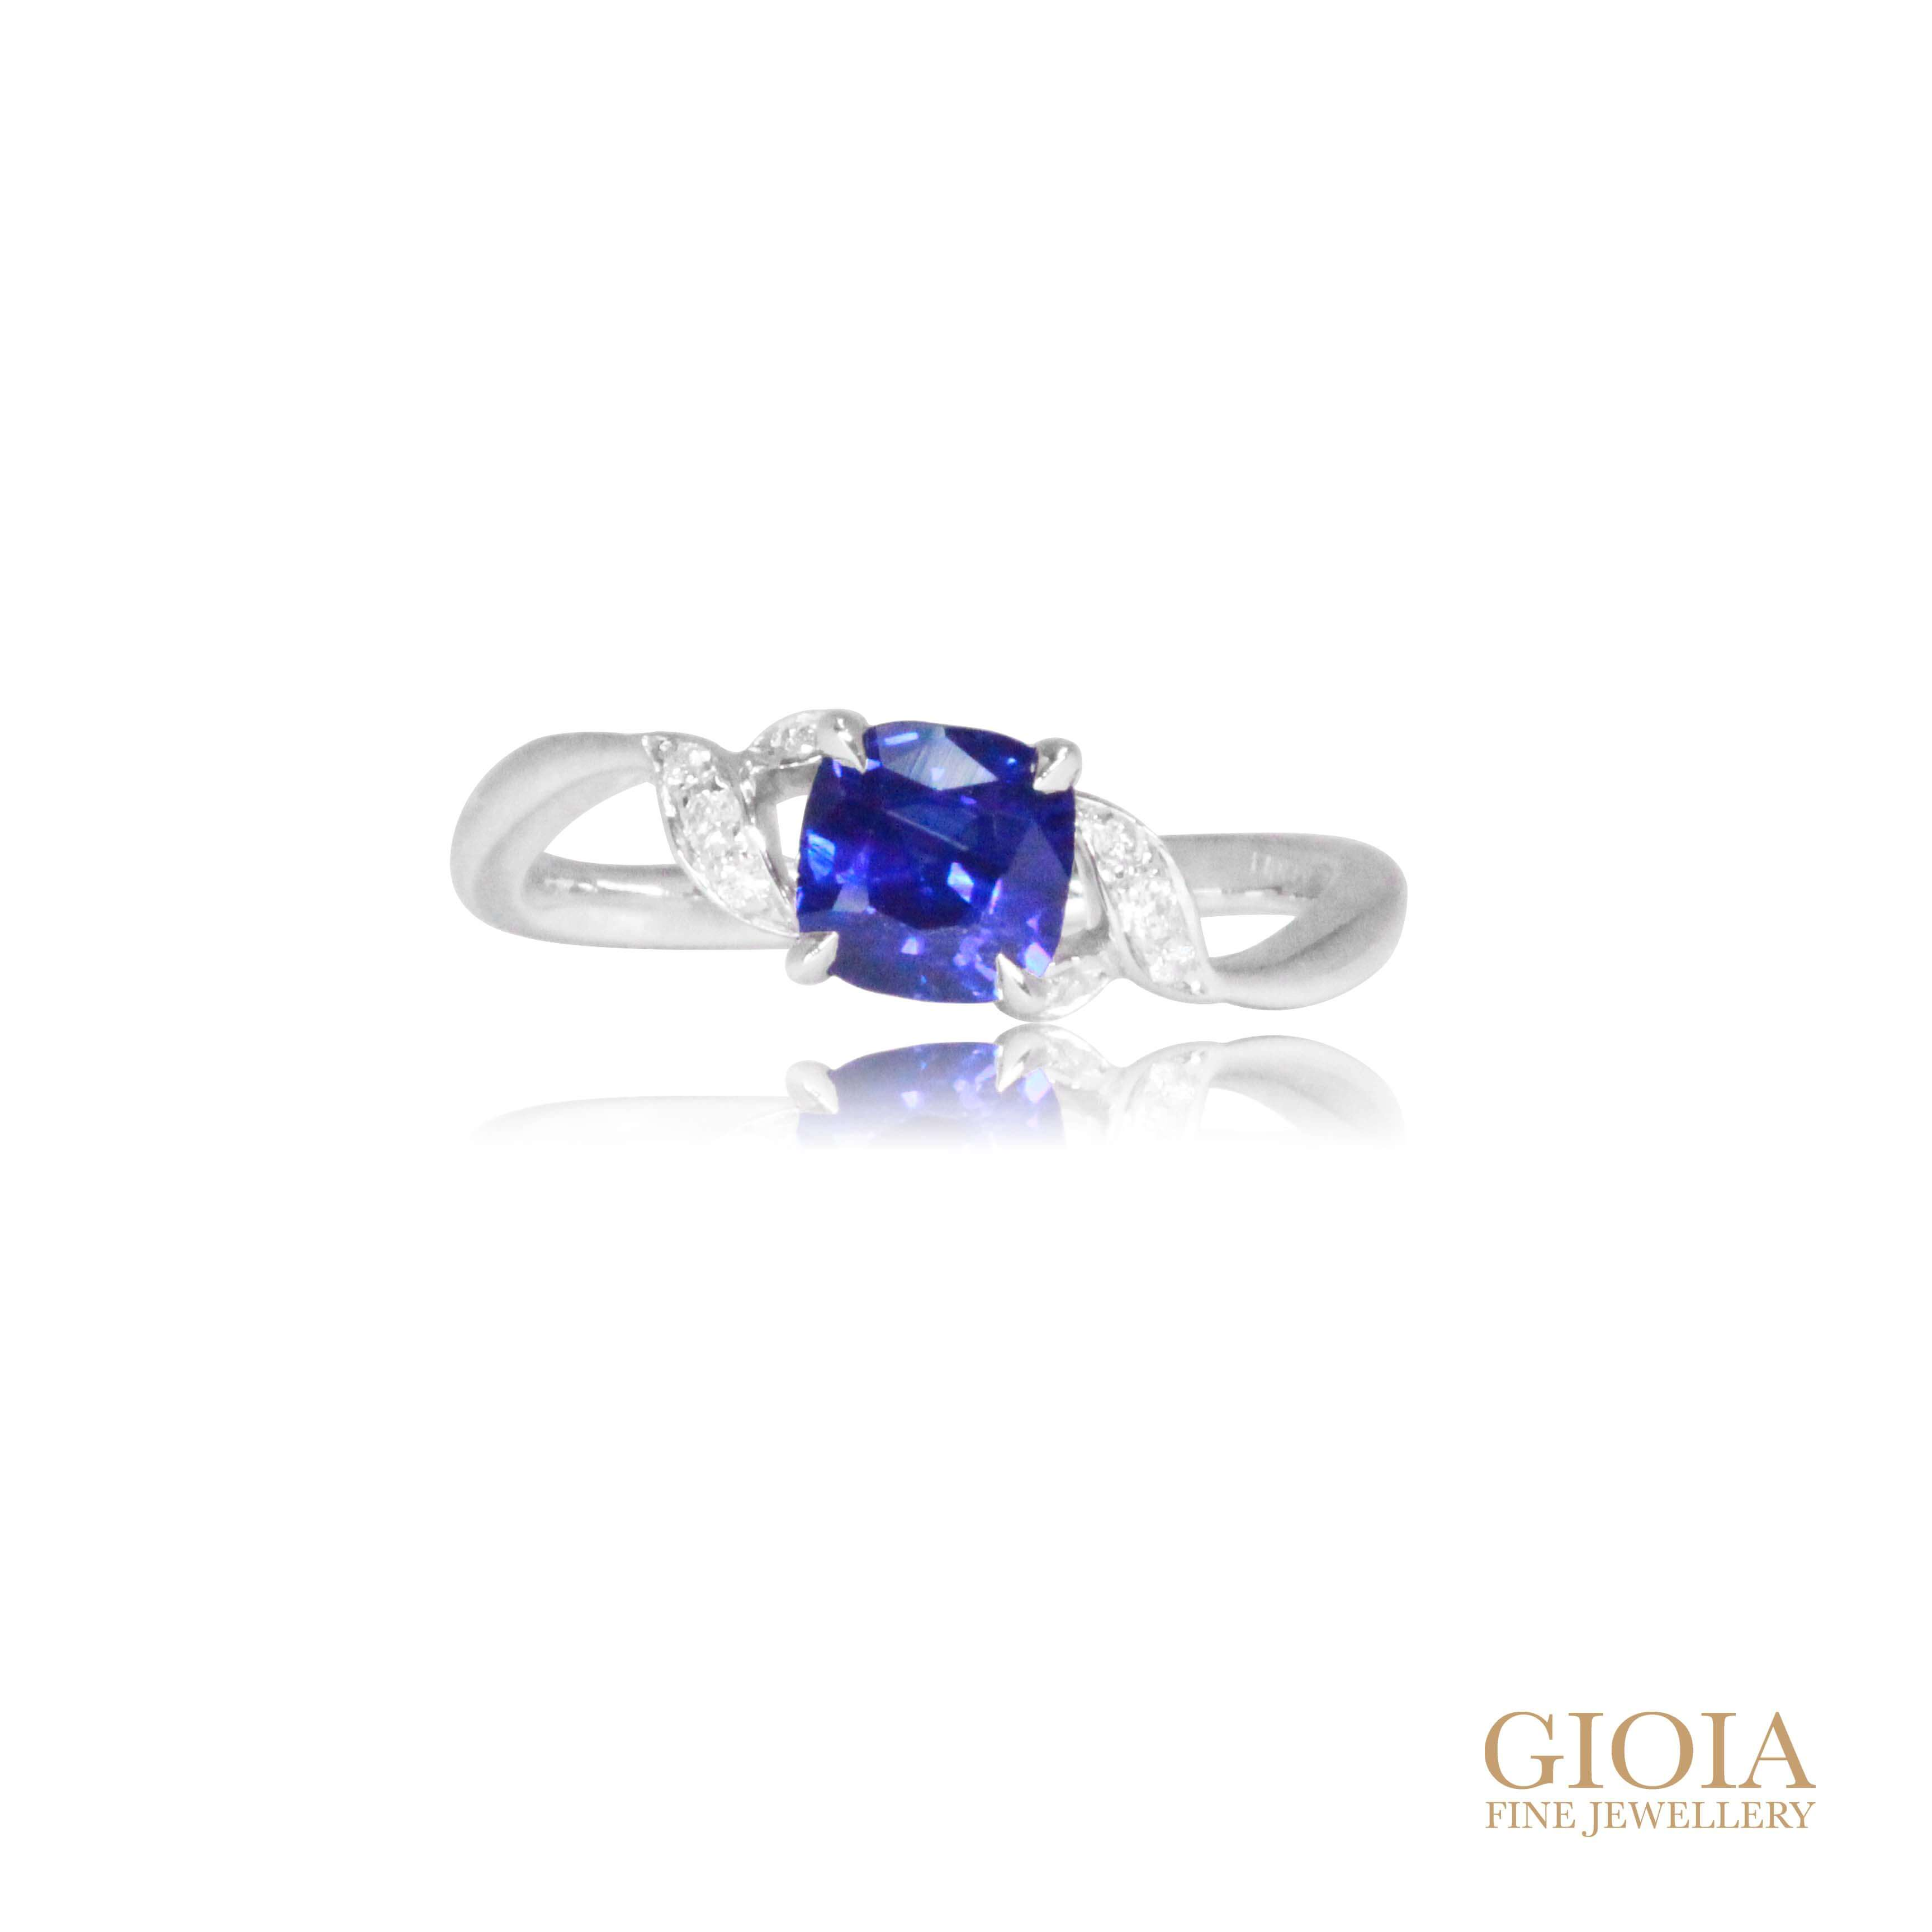 Cornflower Blue Sapphire Engagement Ring for wedding proposal | Local Singapore custom made Jeweller